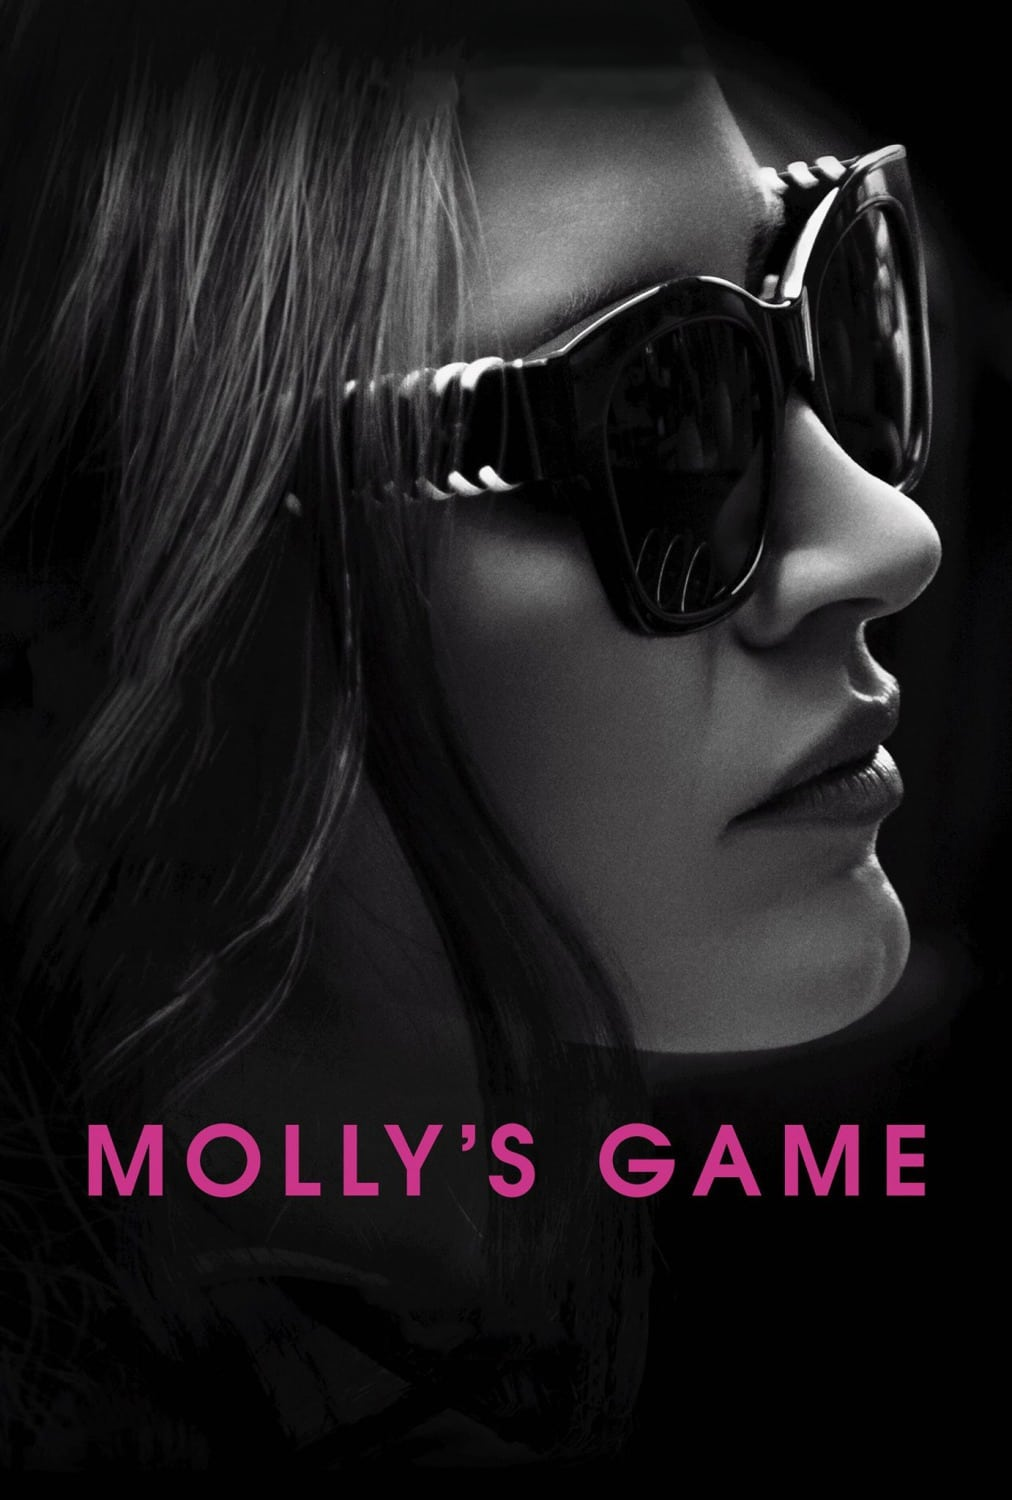 image for Molly